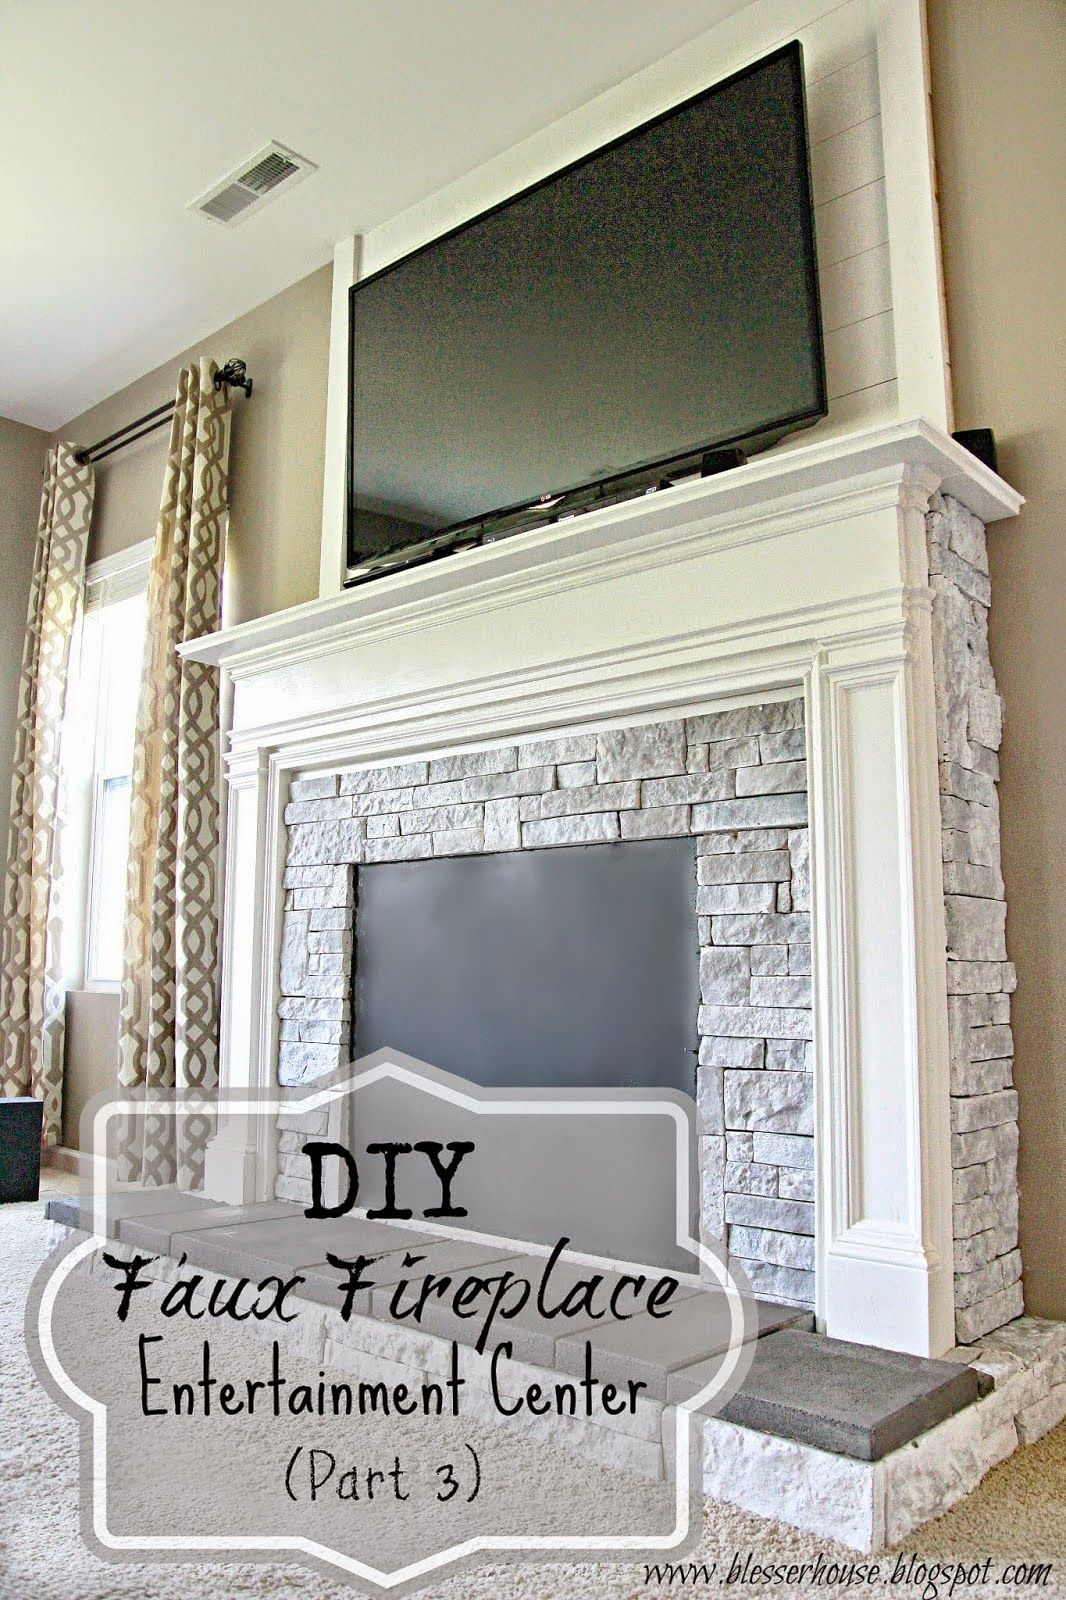 Blessuer house diy faux fireplace for under the big reveal